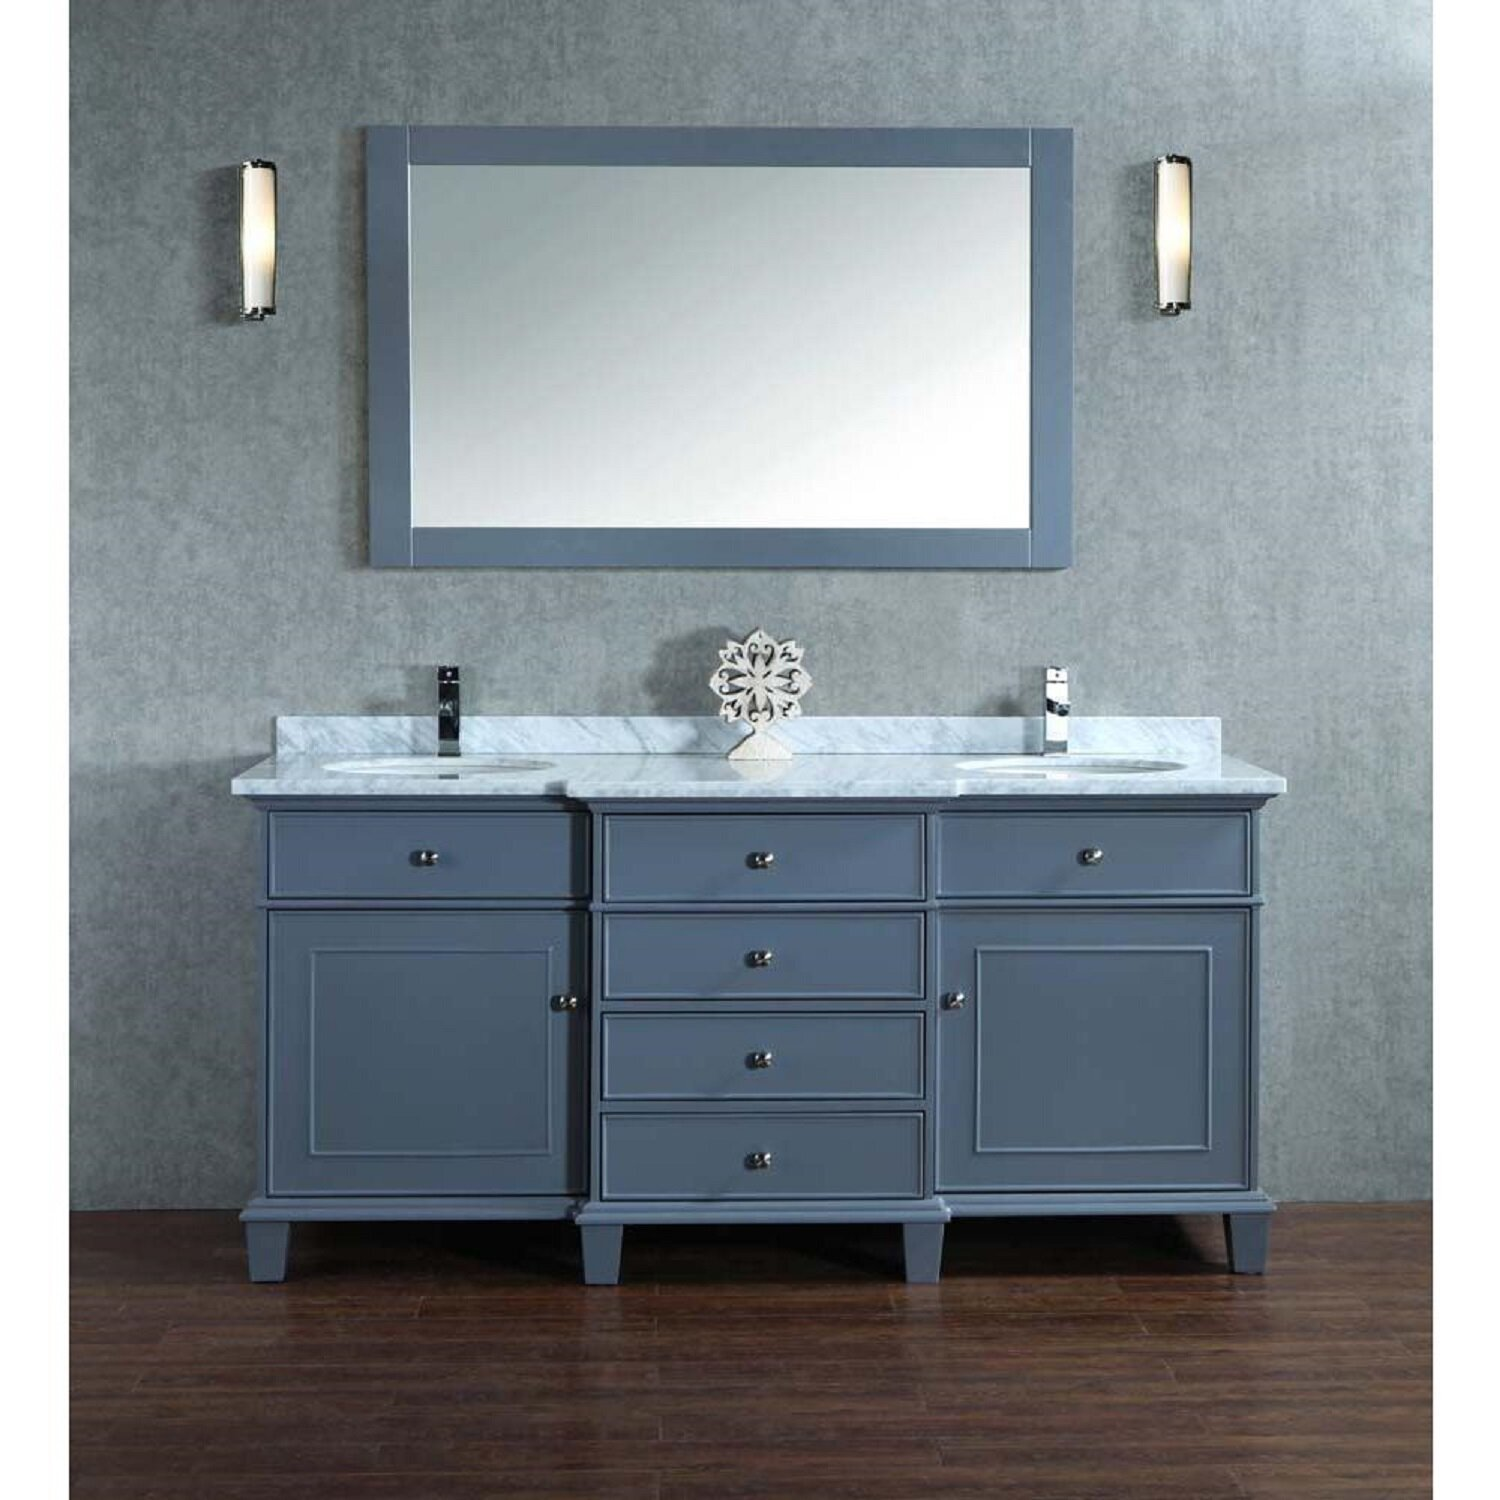 Bathroom Exciting 60 Inch Vanity Double Sink For Modern